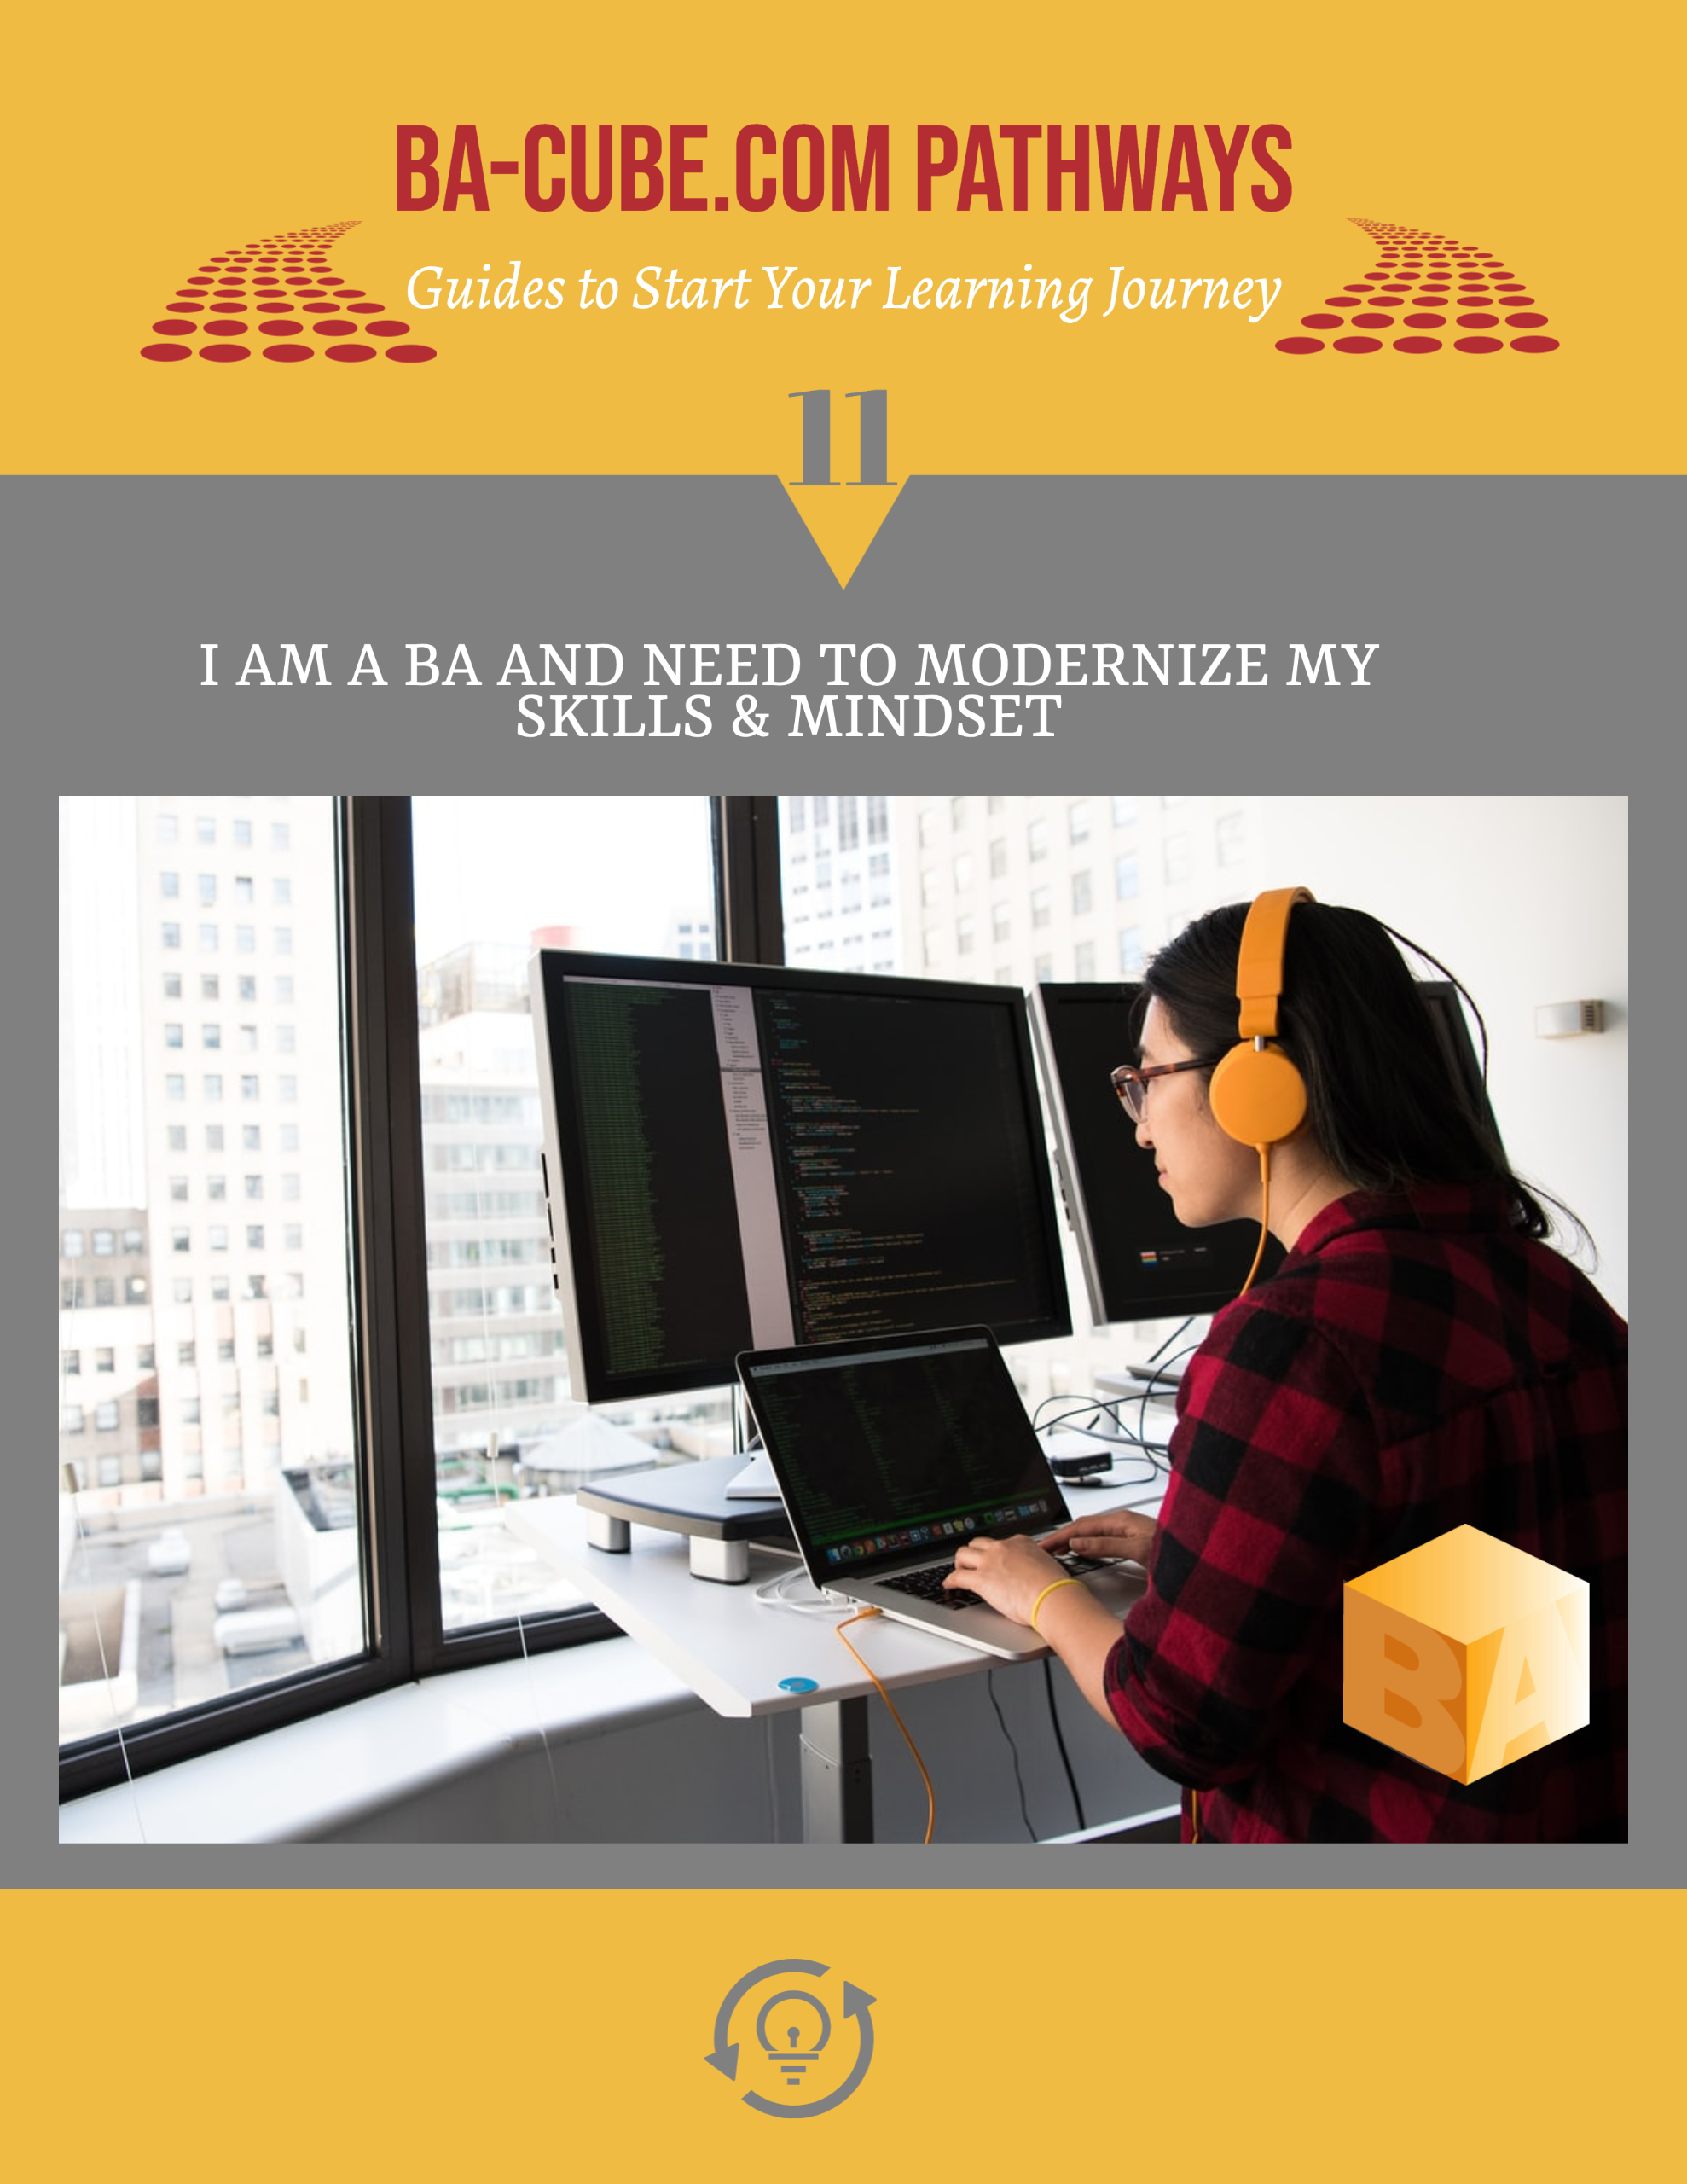 Pathway 11: I am a BA and need to modernize my skills and mindset